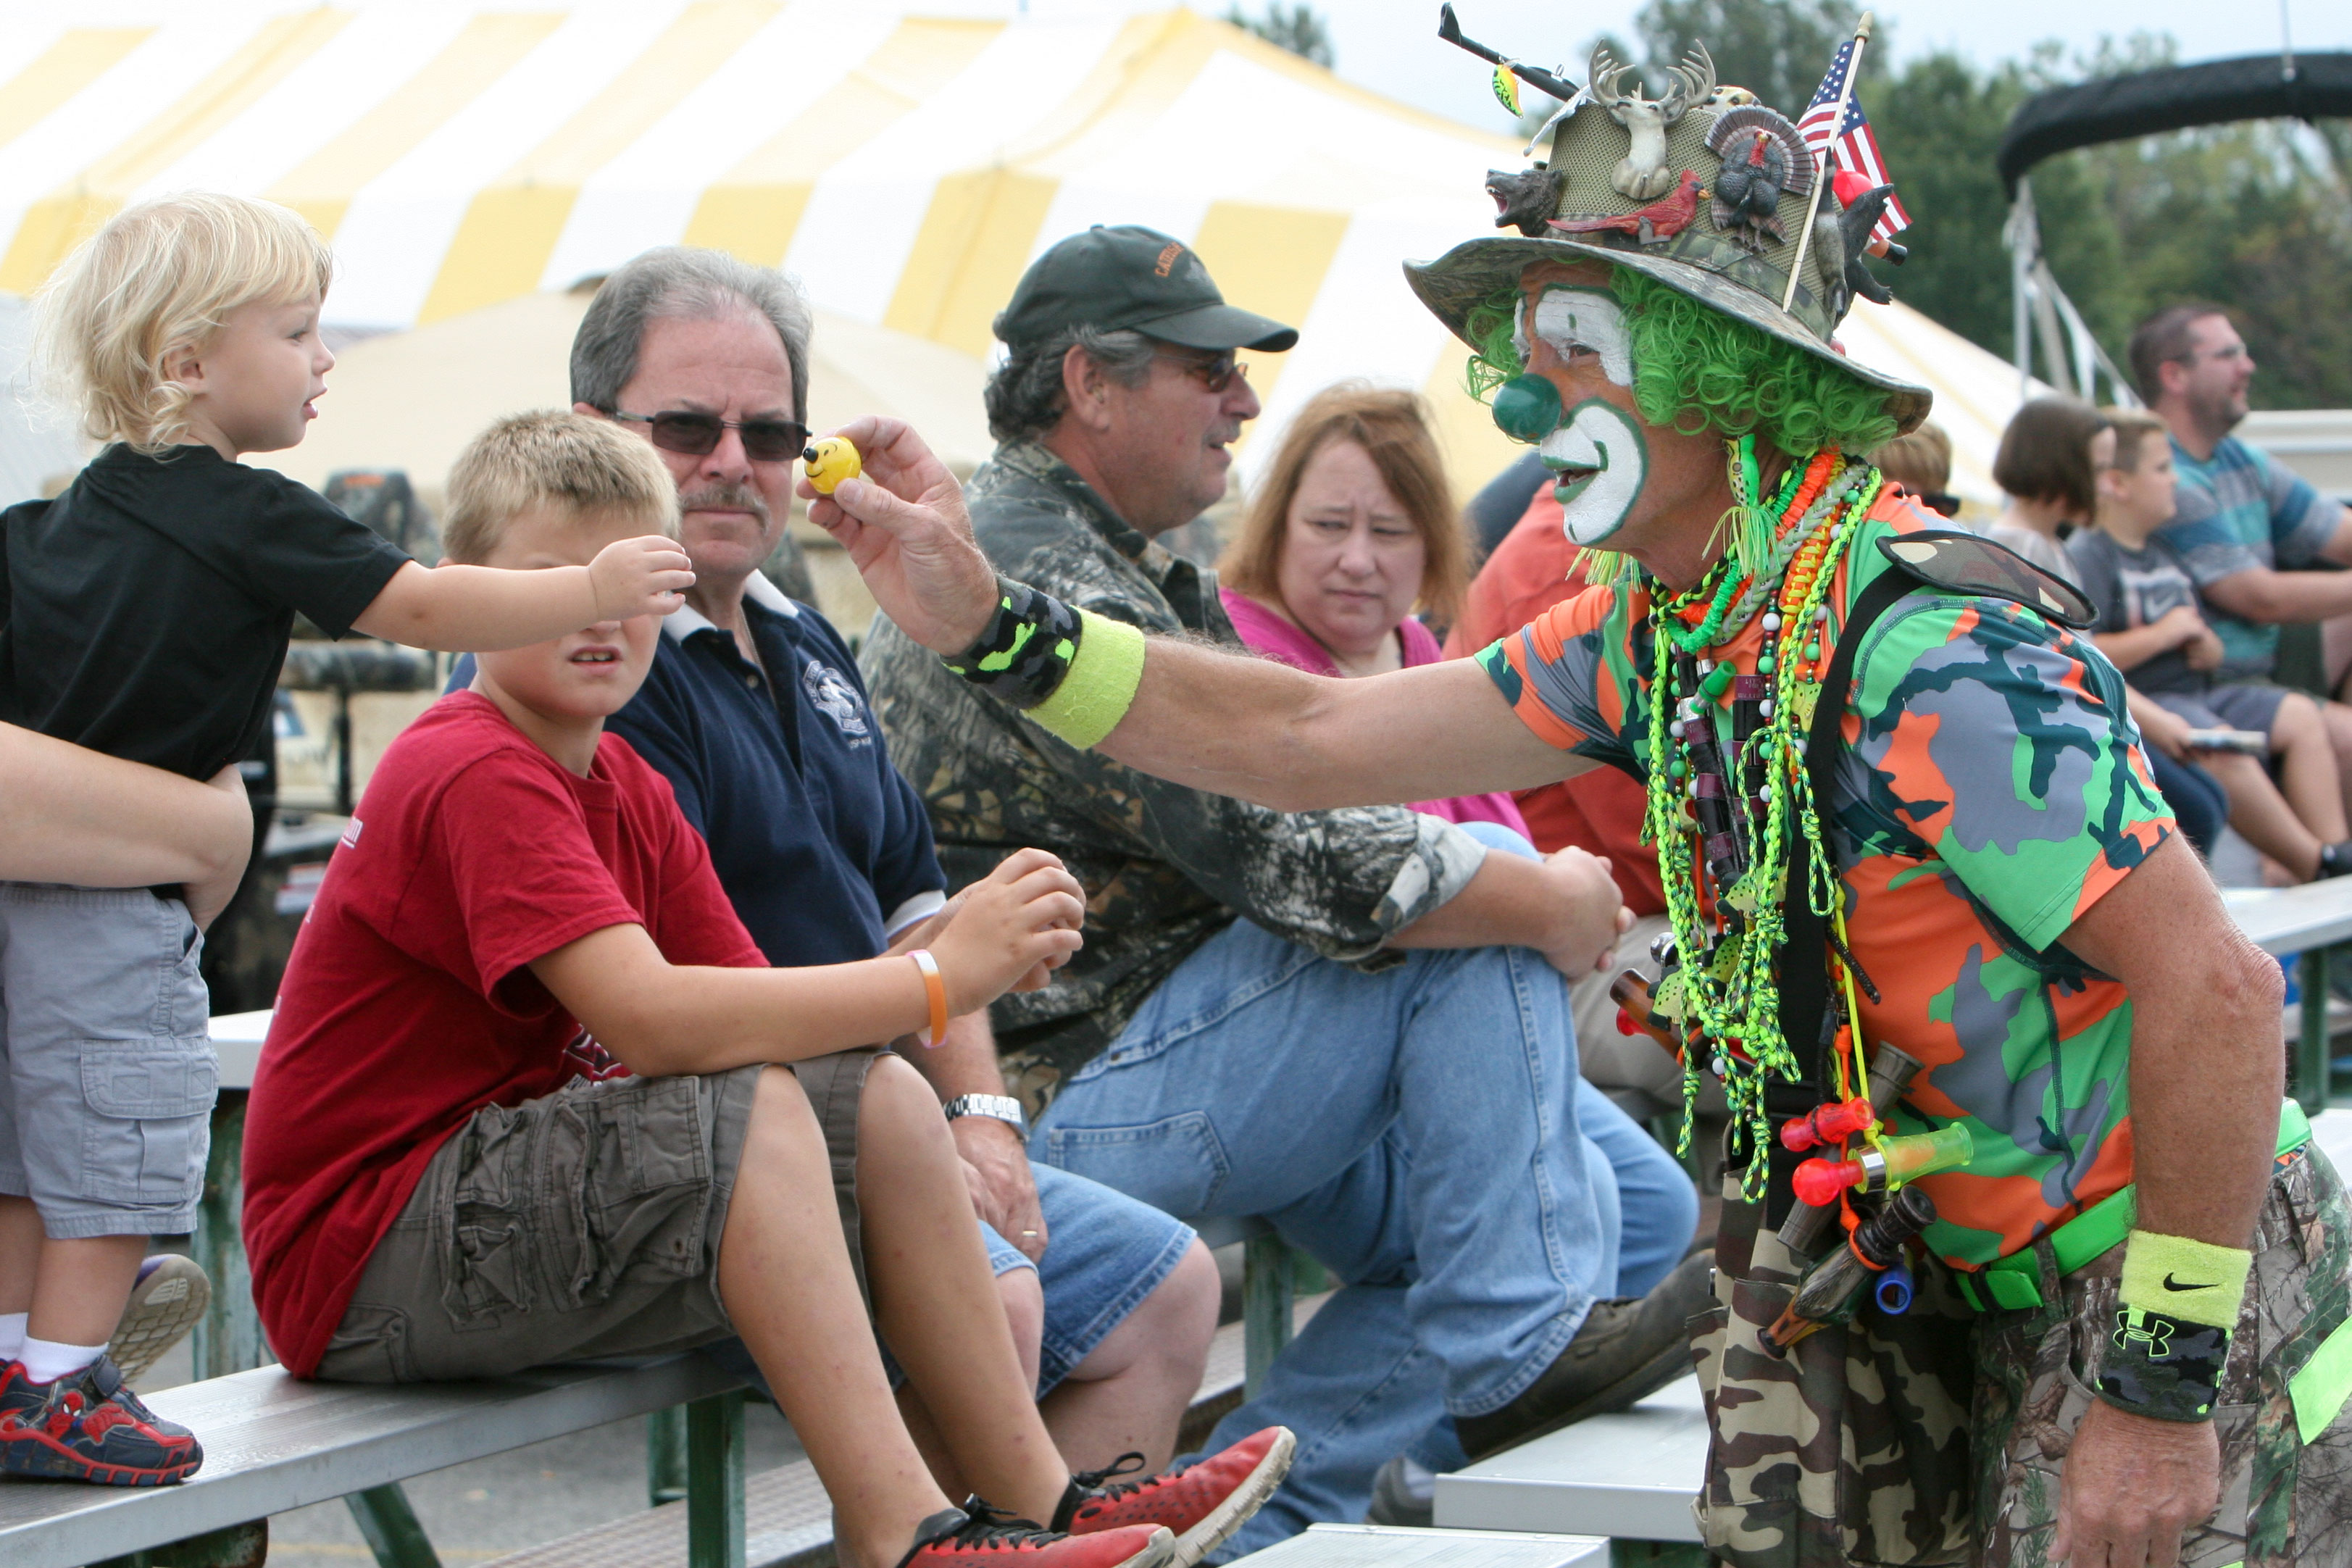 Camo the Clown entertains the crowd.